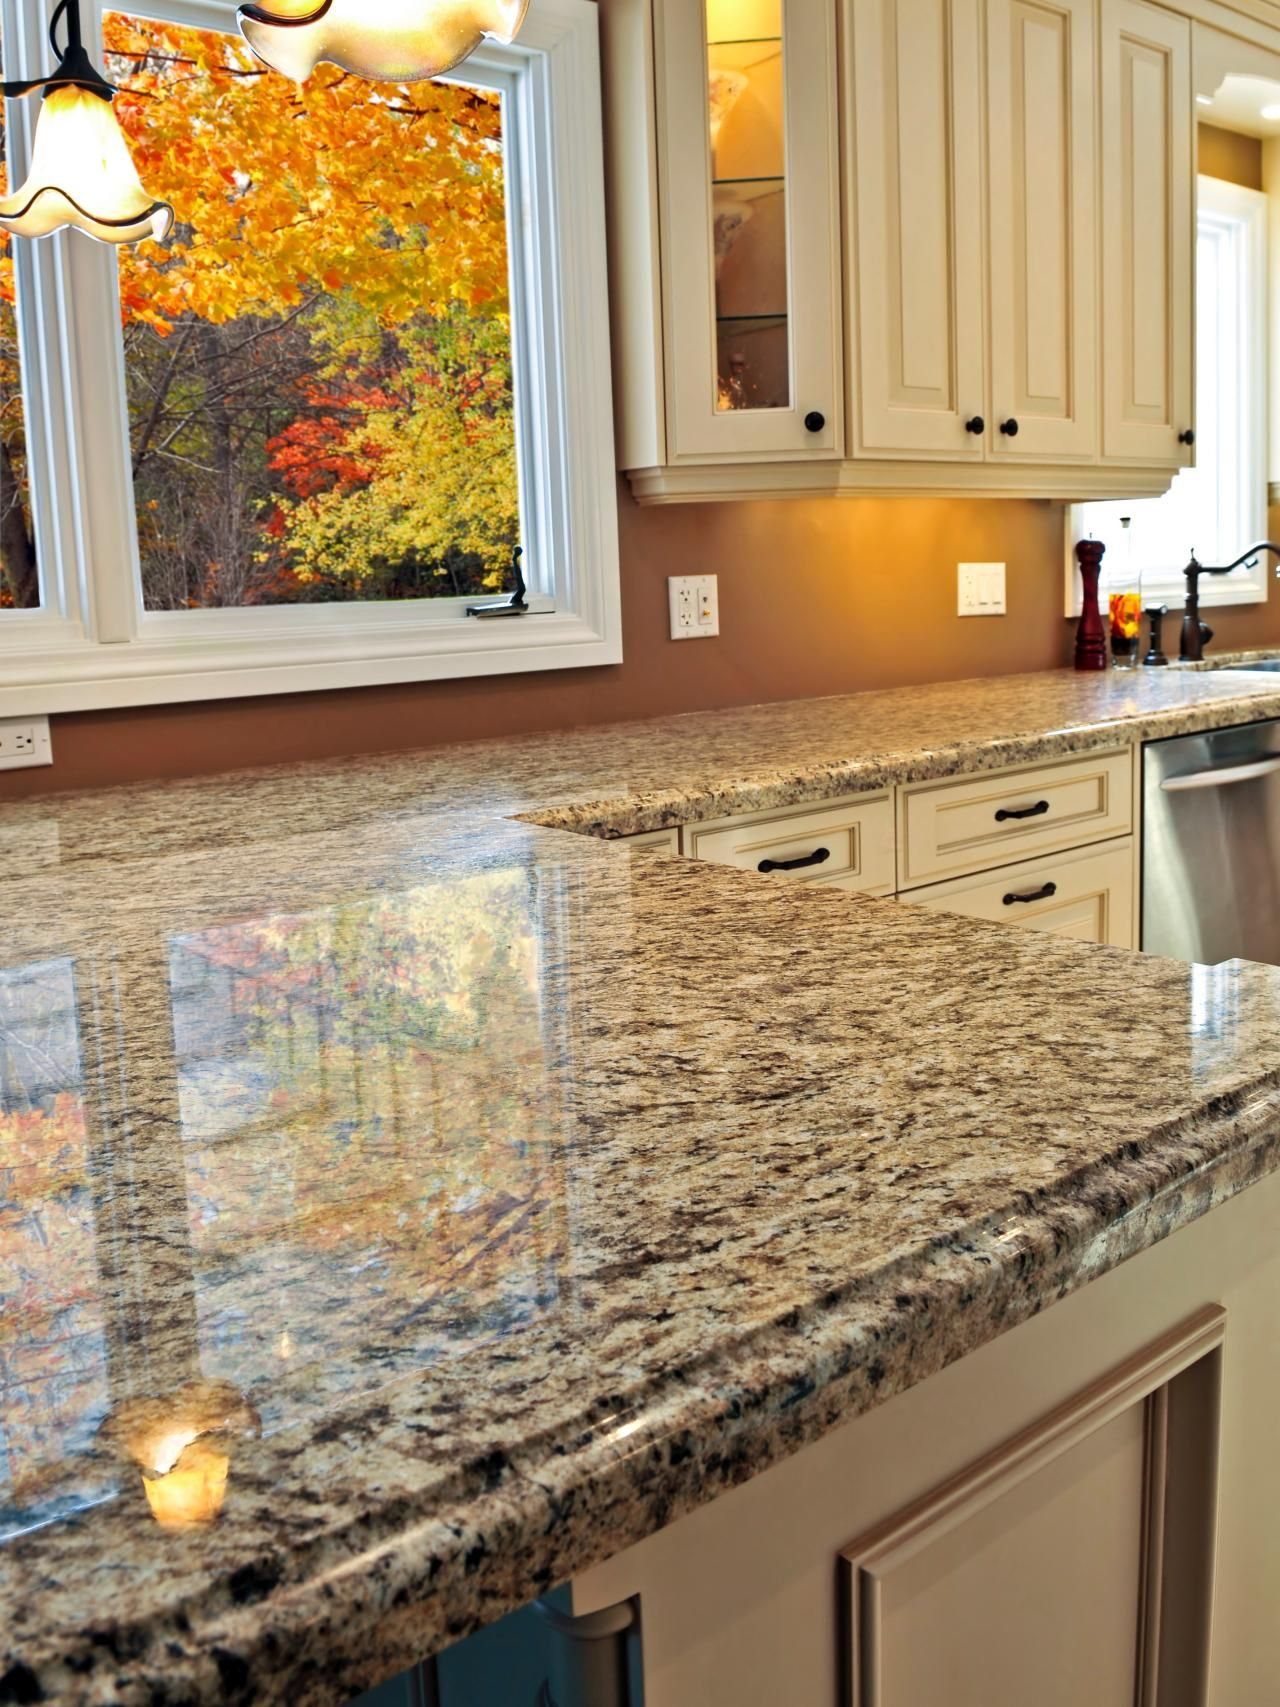 How to Care for Solid-Surface Countertops | Home Cleaning How-Tos for Carpets, Furniture, Bathrooms & More | DIY